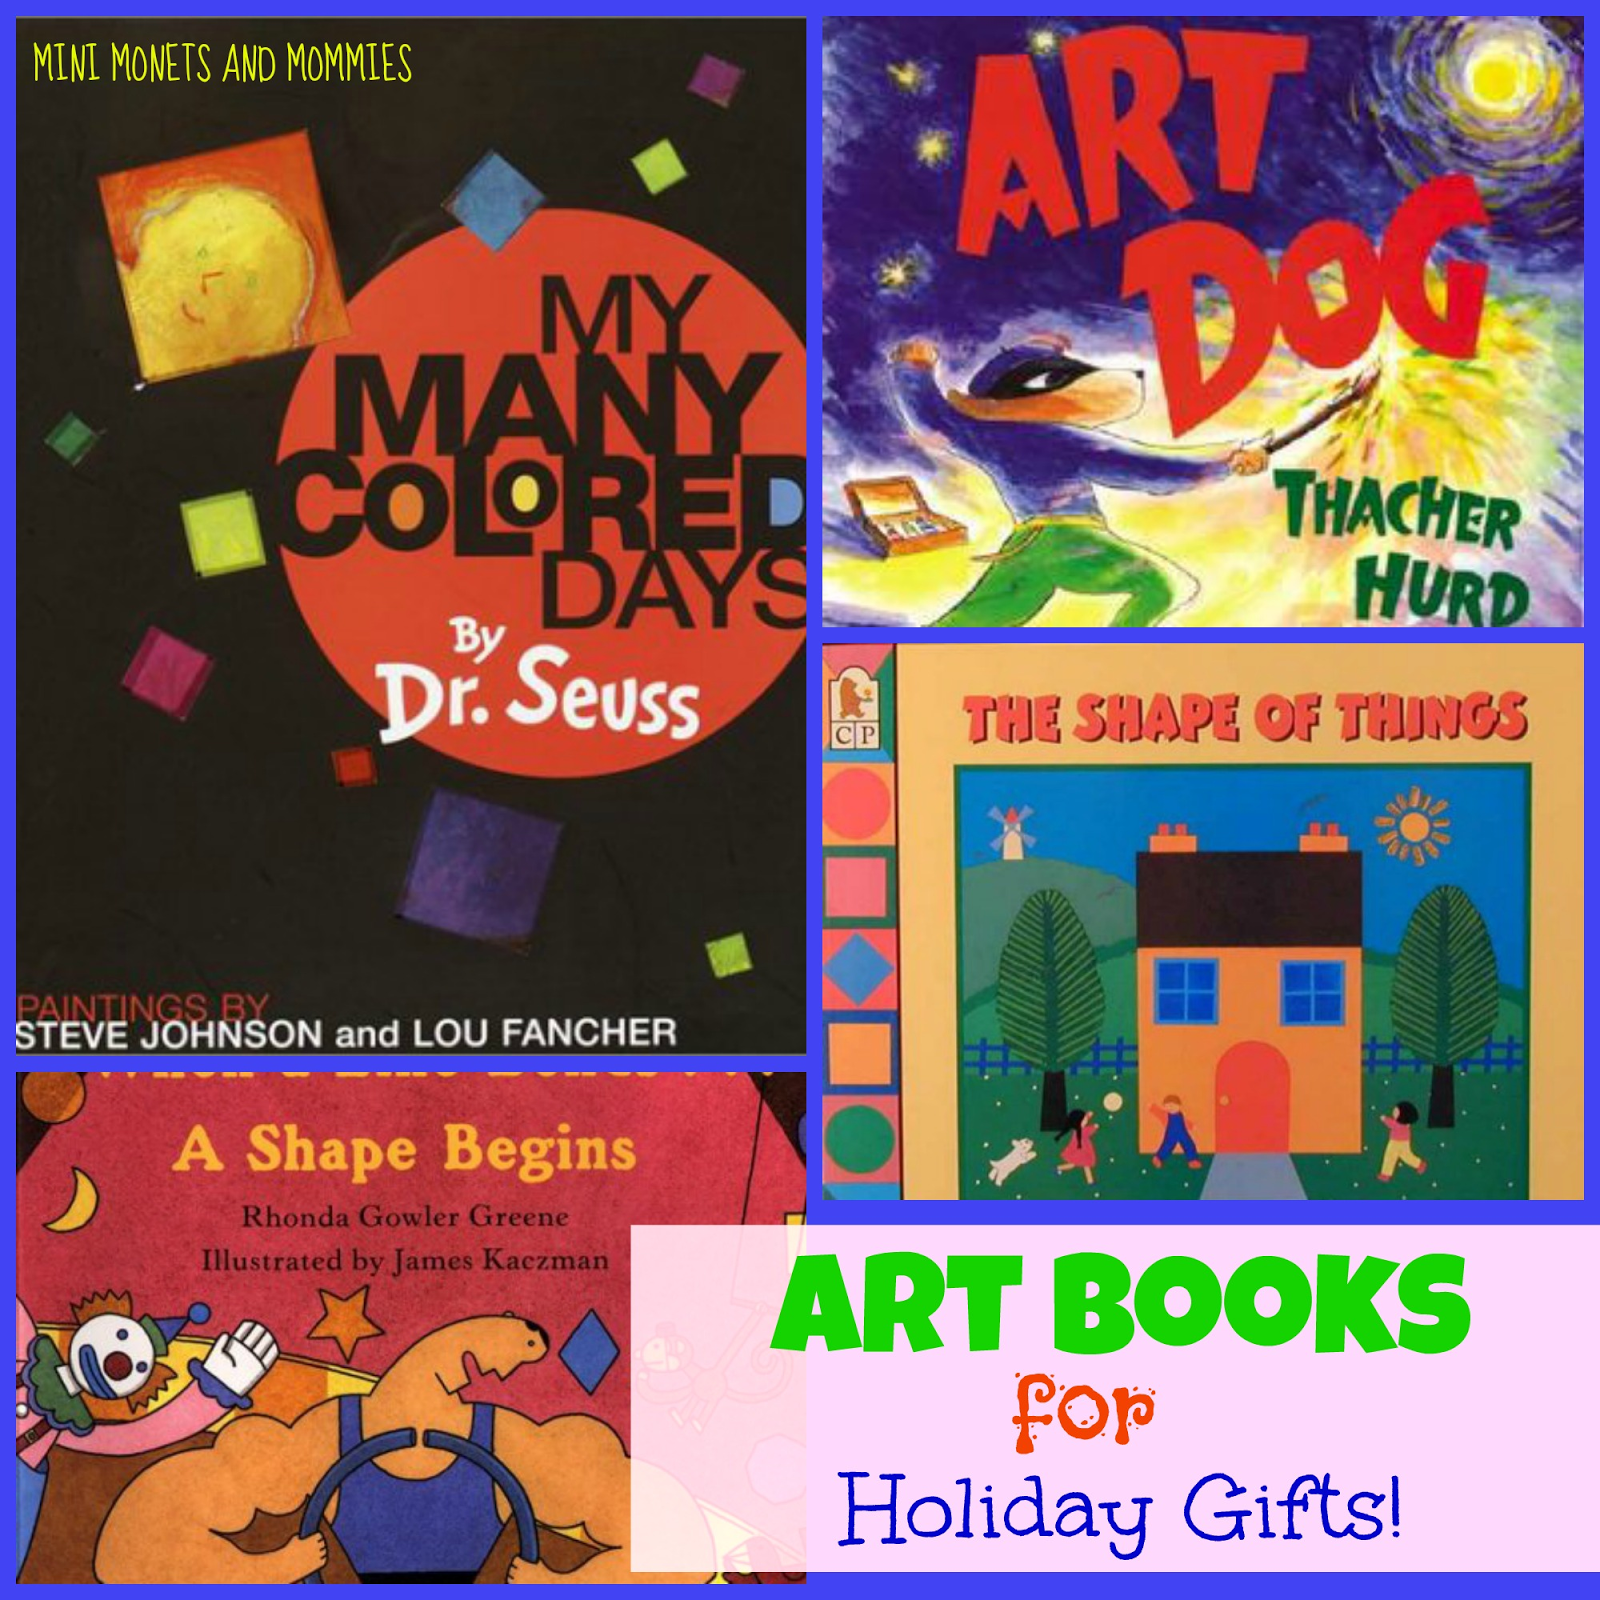 Books about color for kids - Children S Picture Books About Art Colors And Shapes Holiday Gift List Along With Arts